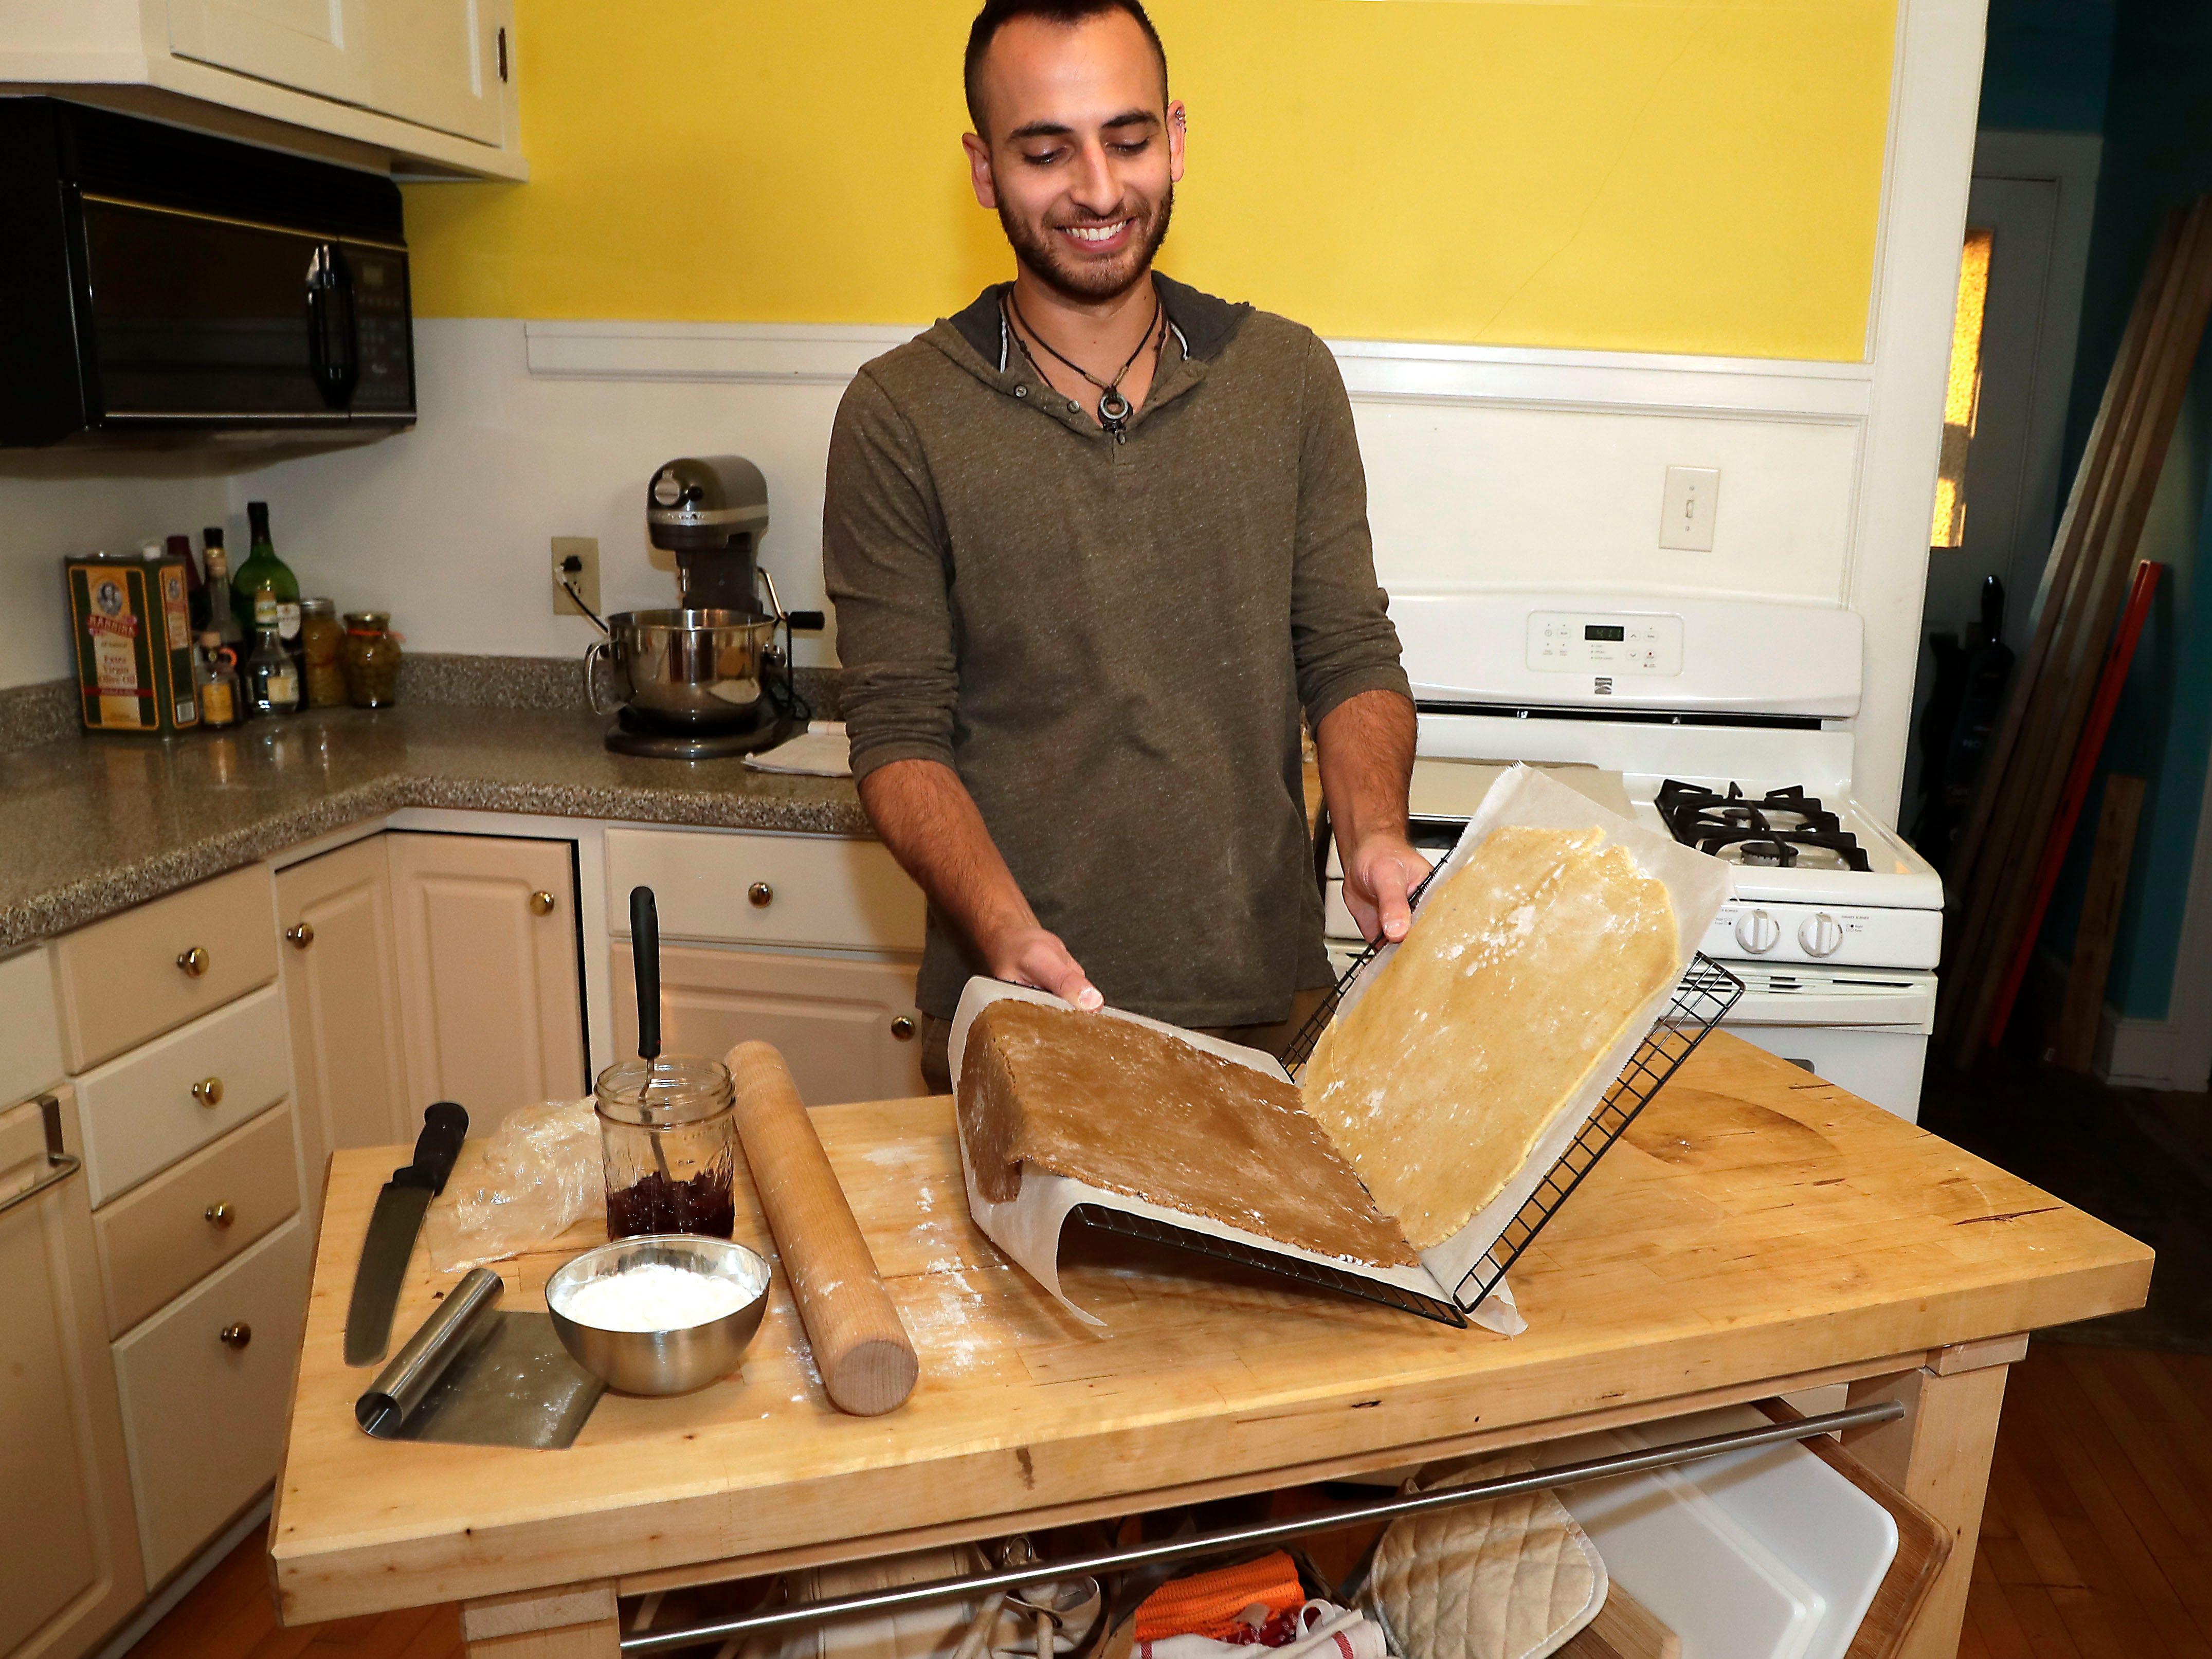 He makes use of cooling racks to stack the two doughs by folding them together like a book.